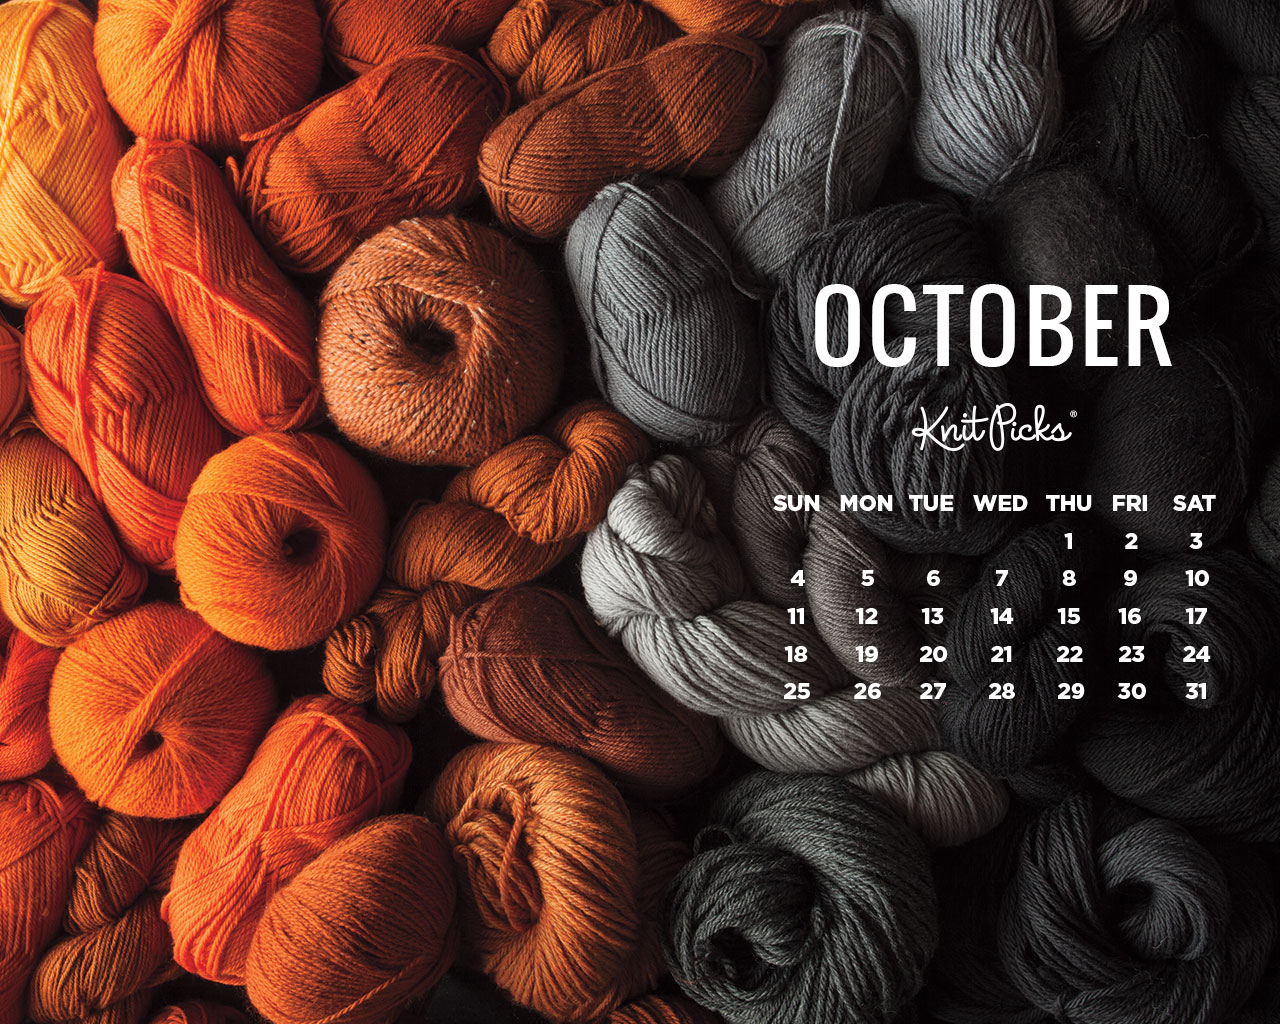 October 2015 Wallpaper Calendar   KnitPicks Staff Knitting Blog 1280x1024